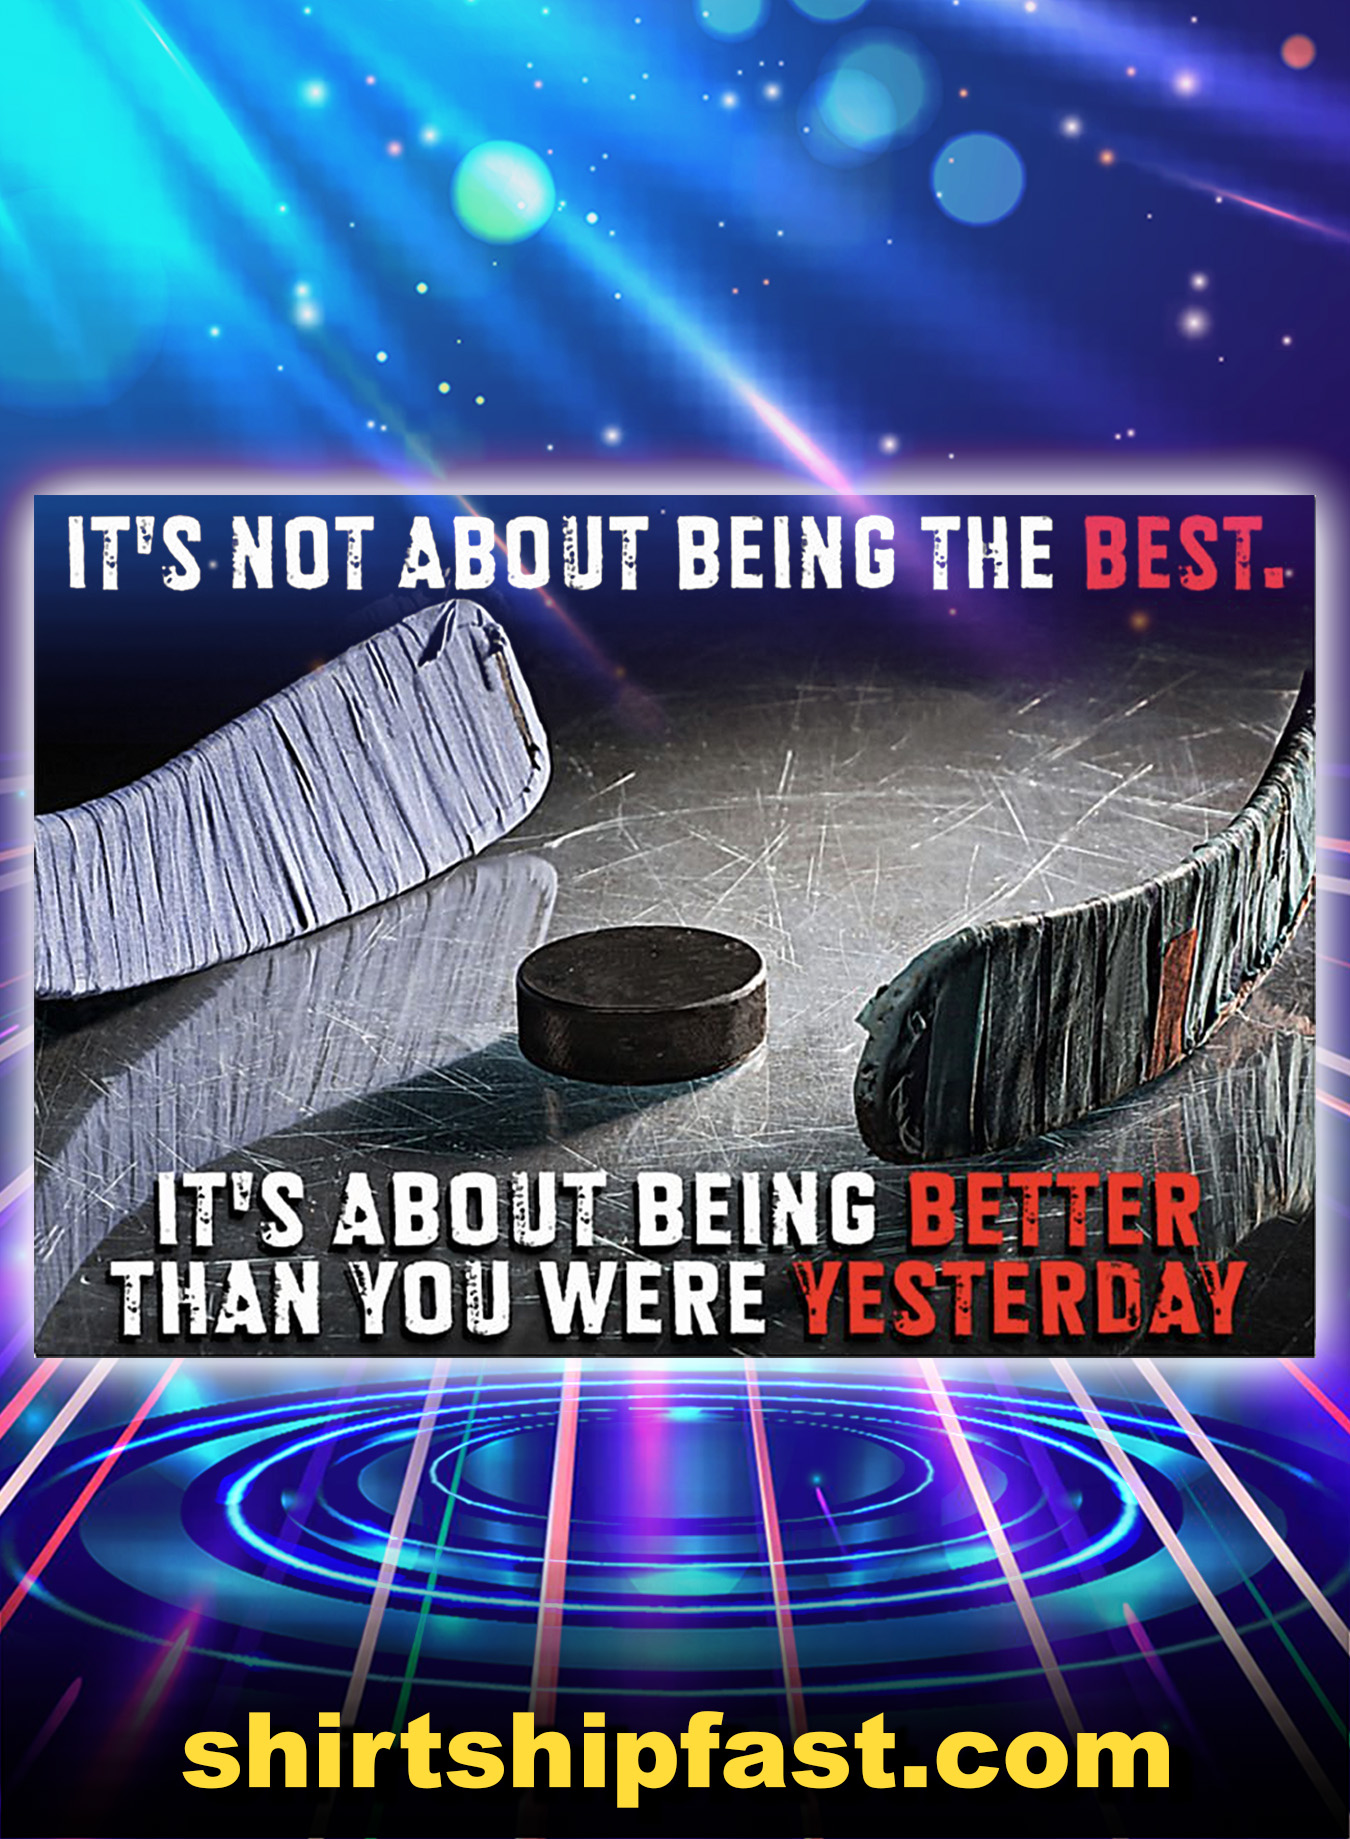 Hockey It's not about being the best poster - A3